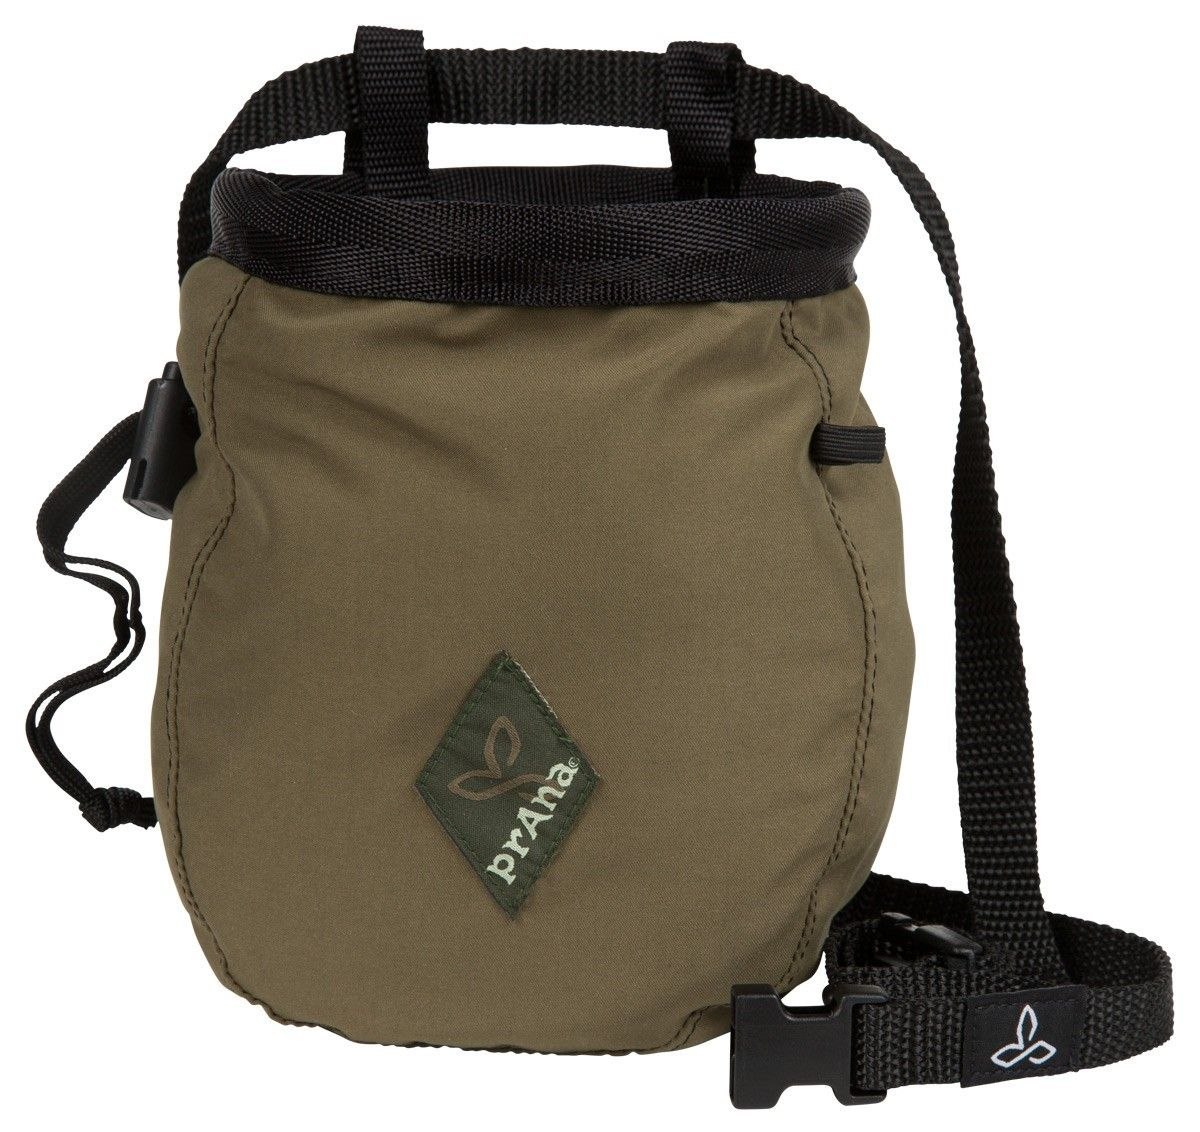 A List Of The Best Chalk Bags 2017 Including Top Options For Rock Climbing Bouldering And Beginner Climbers